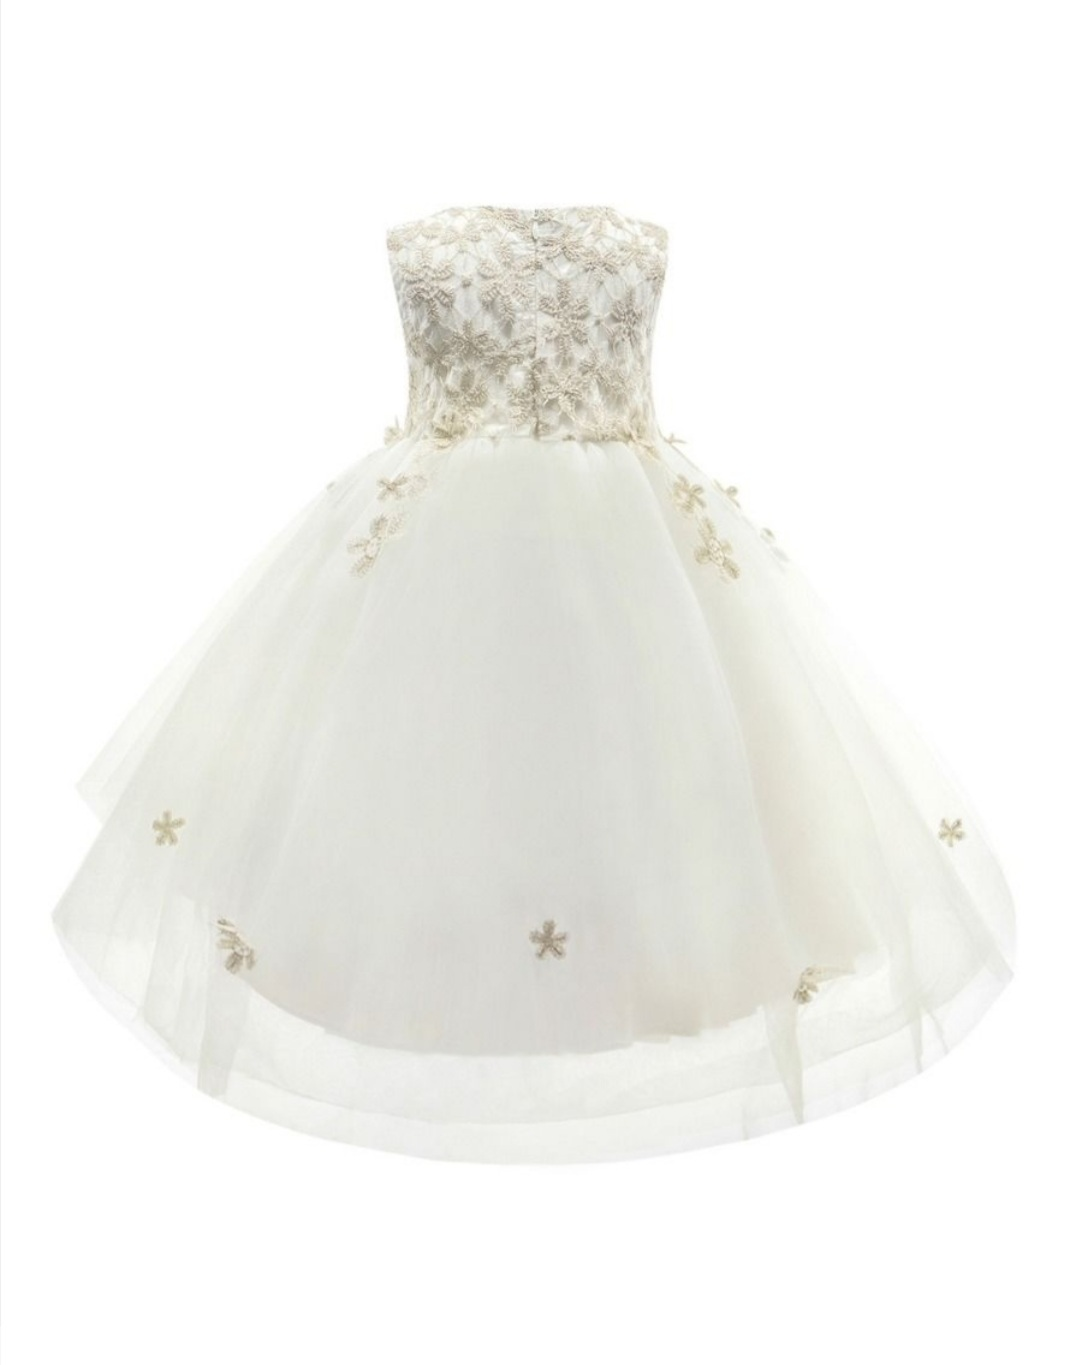 special occasion embroidery flower mesh dress 3 to 4 years